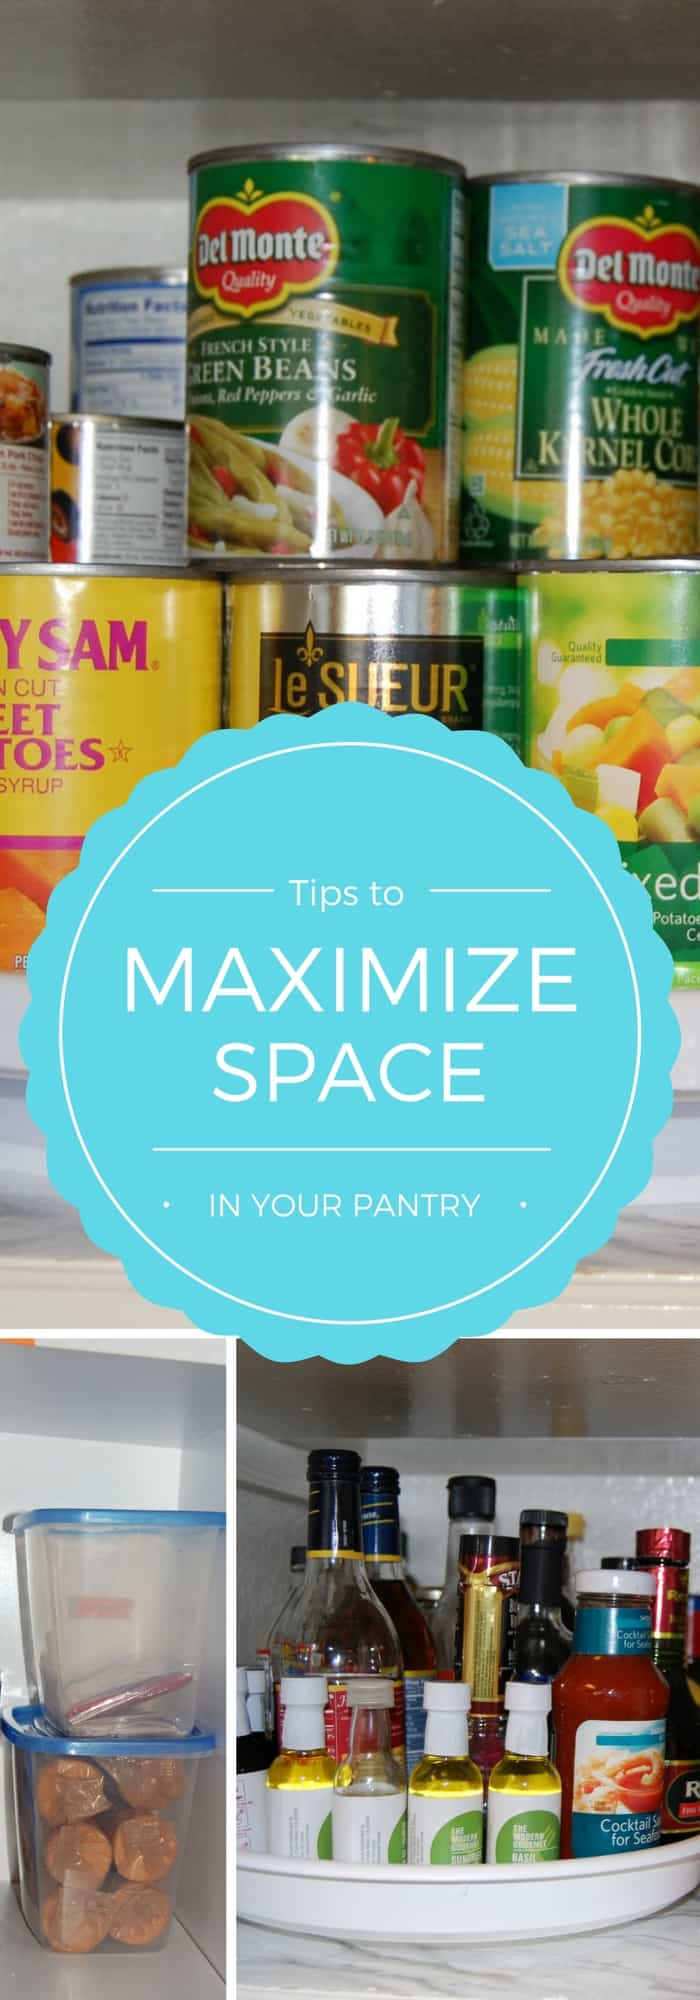 maximize space in your pantry